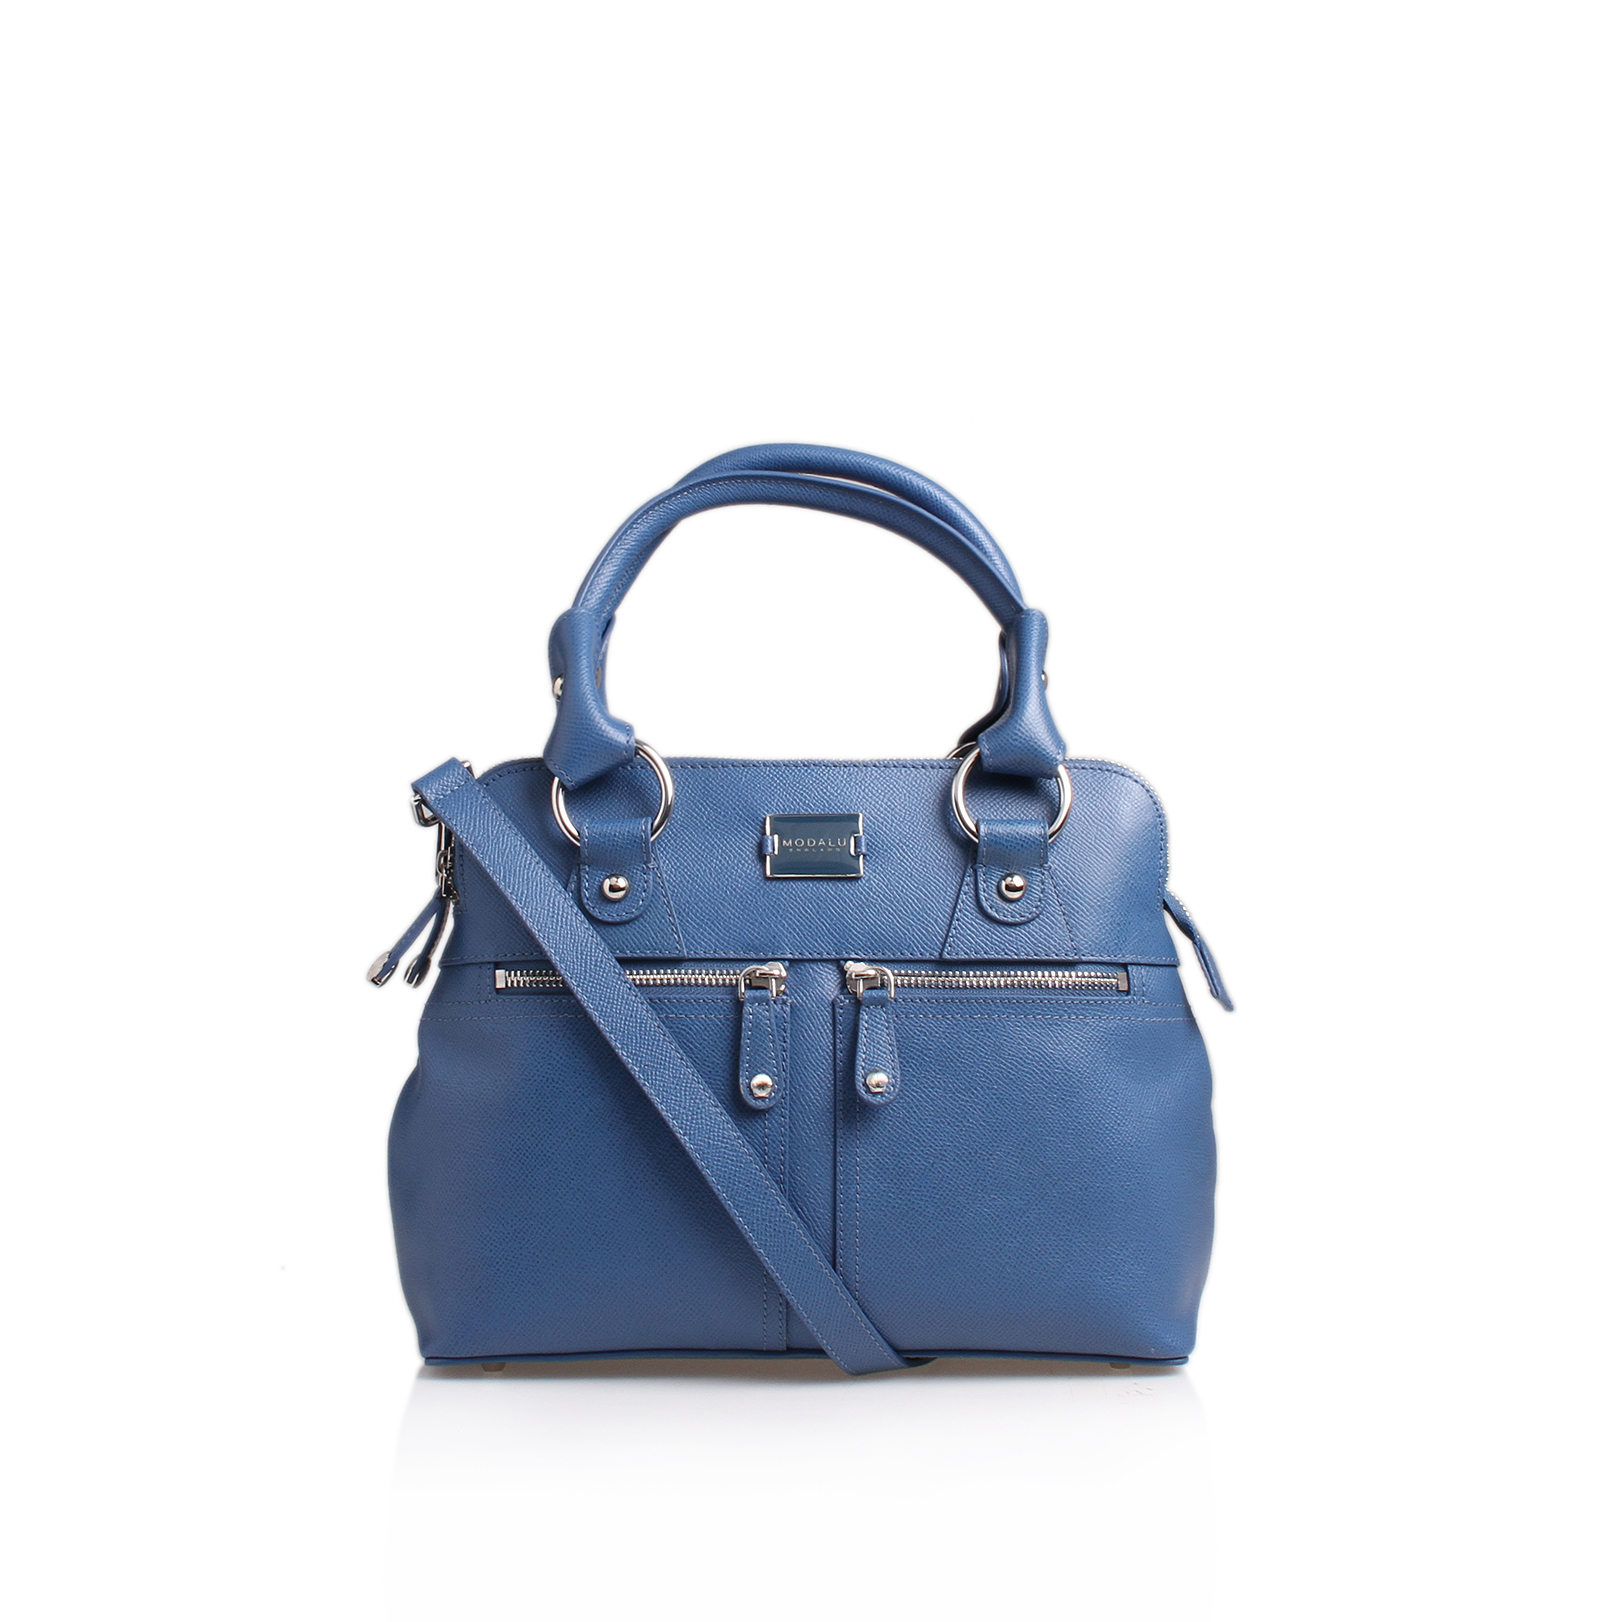 PIPPA 4 LEATHER BAG